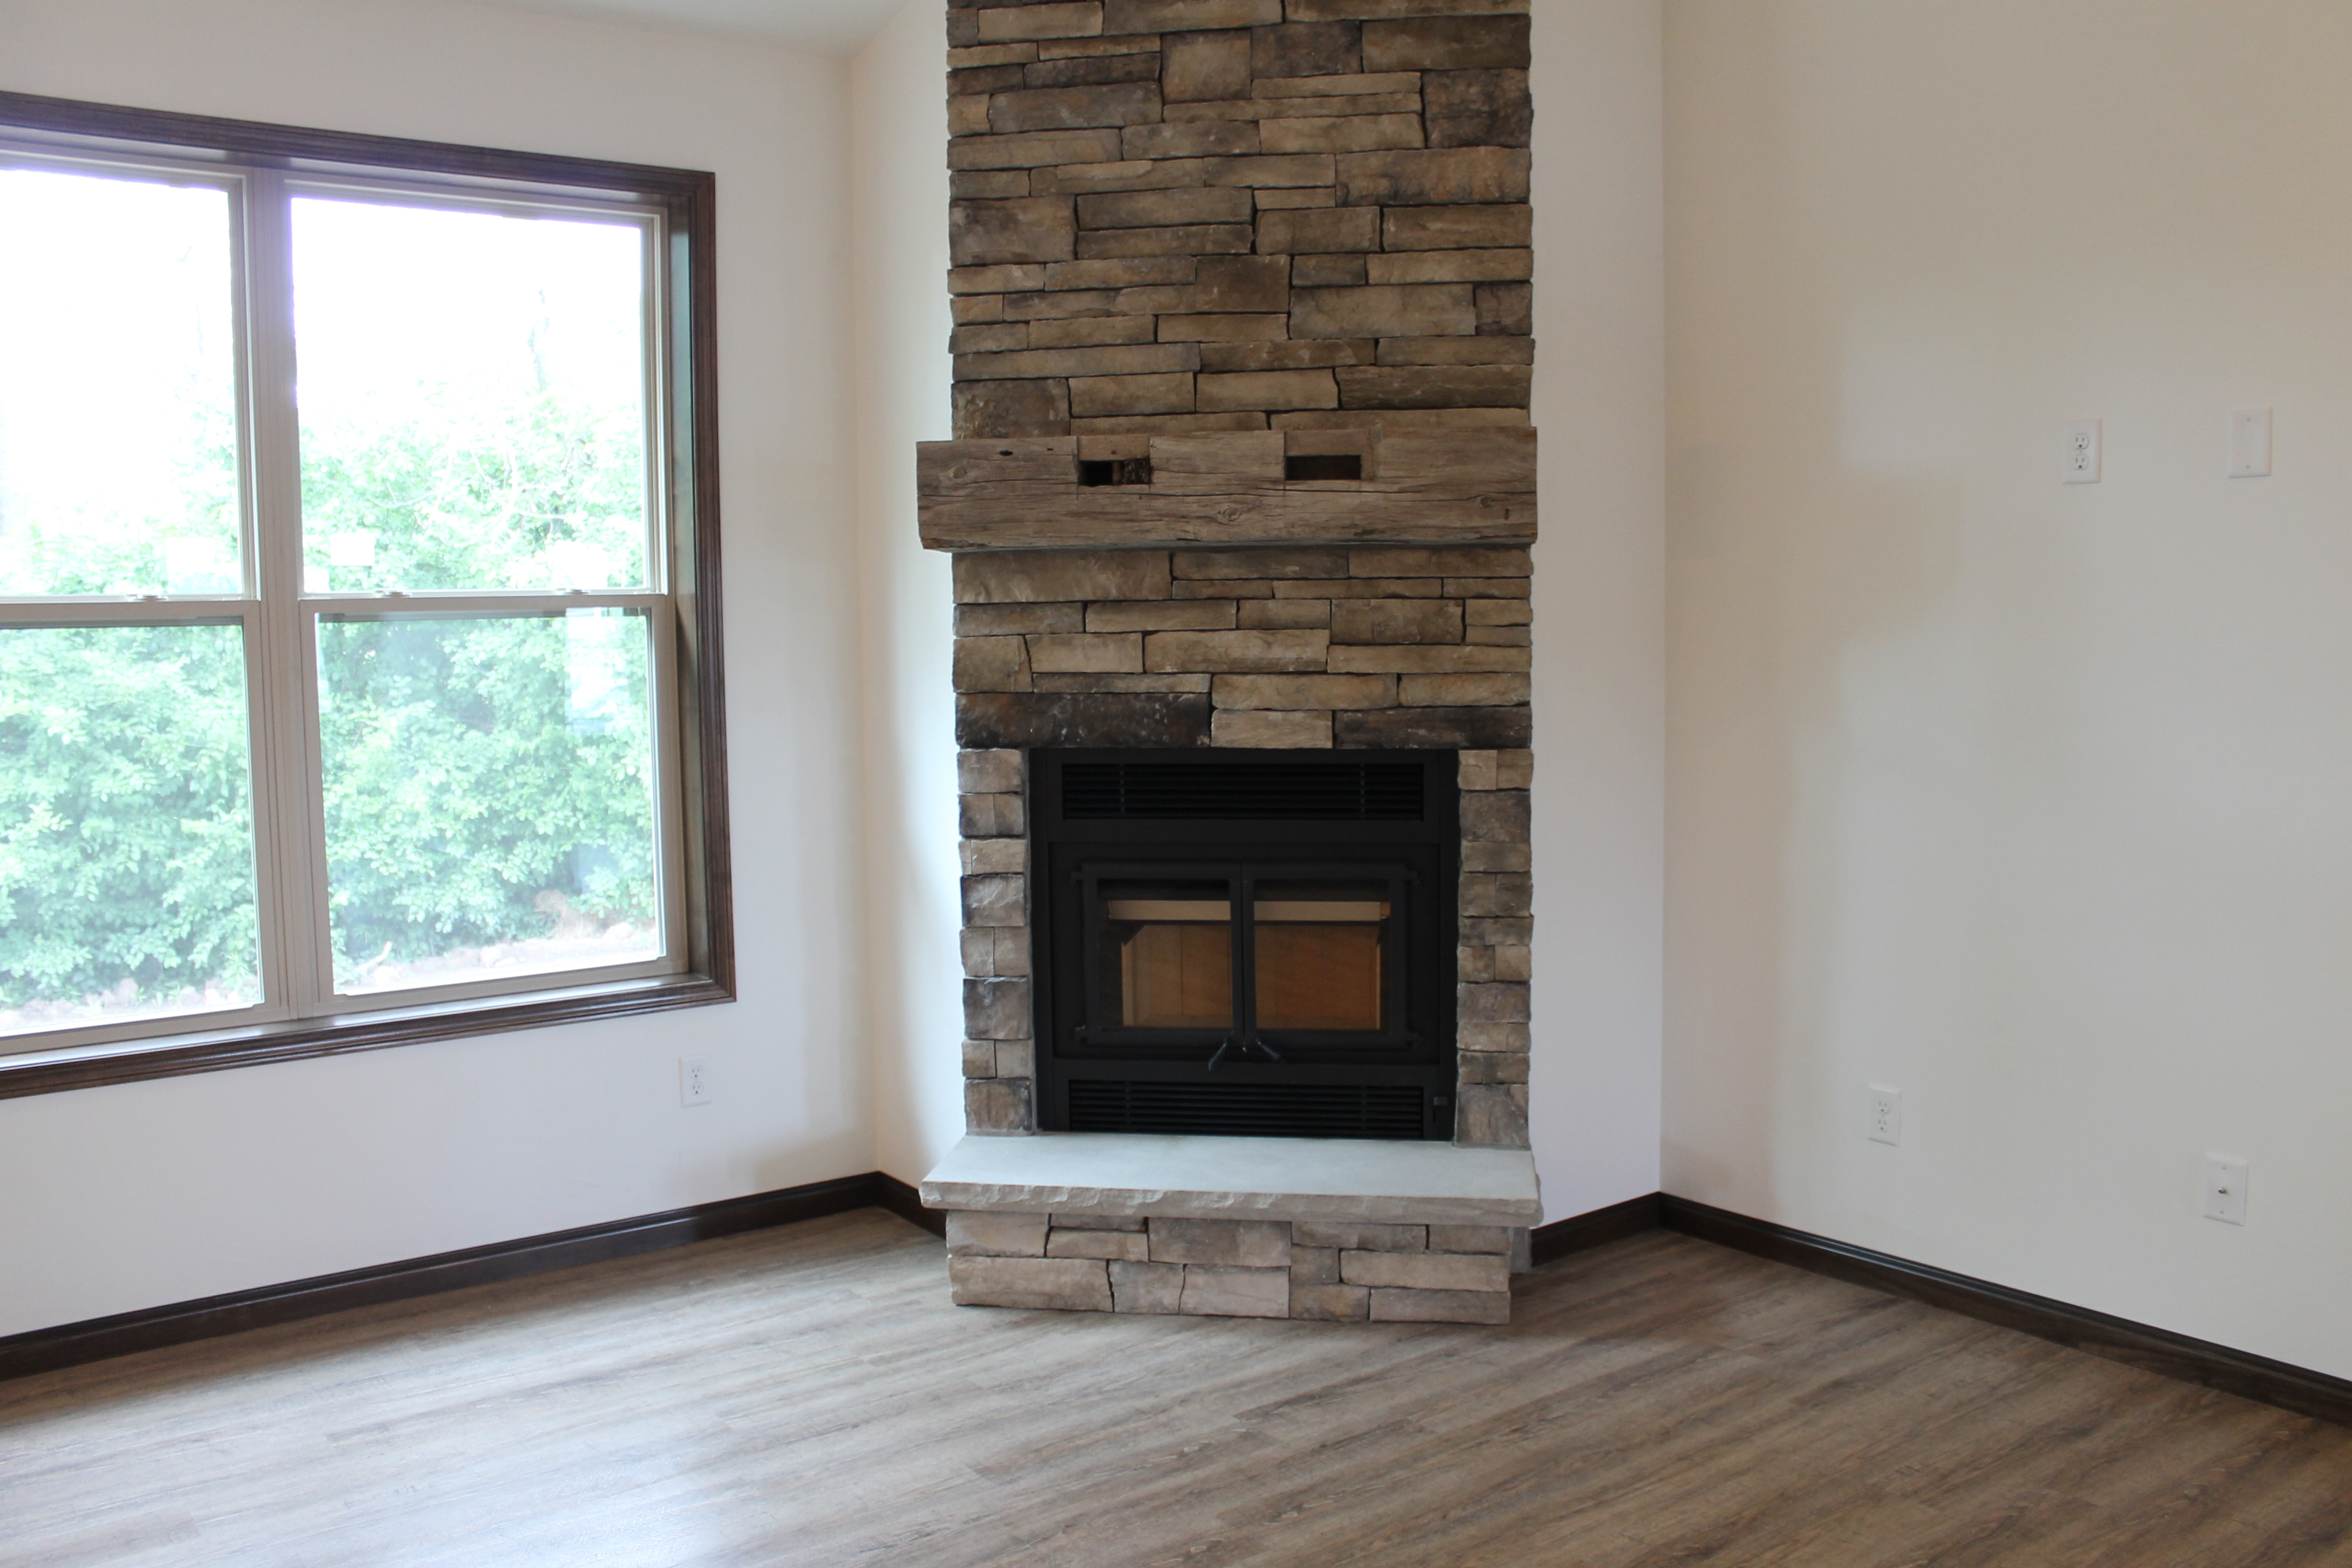 Fireplace Raised Hearth. It showcases a raised hearth  reclaimed barn beam mantel and stone on the face of angle with plastered returns side Fireplace Designs Rustic Mantel Trend Katie Jane Interiors